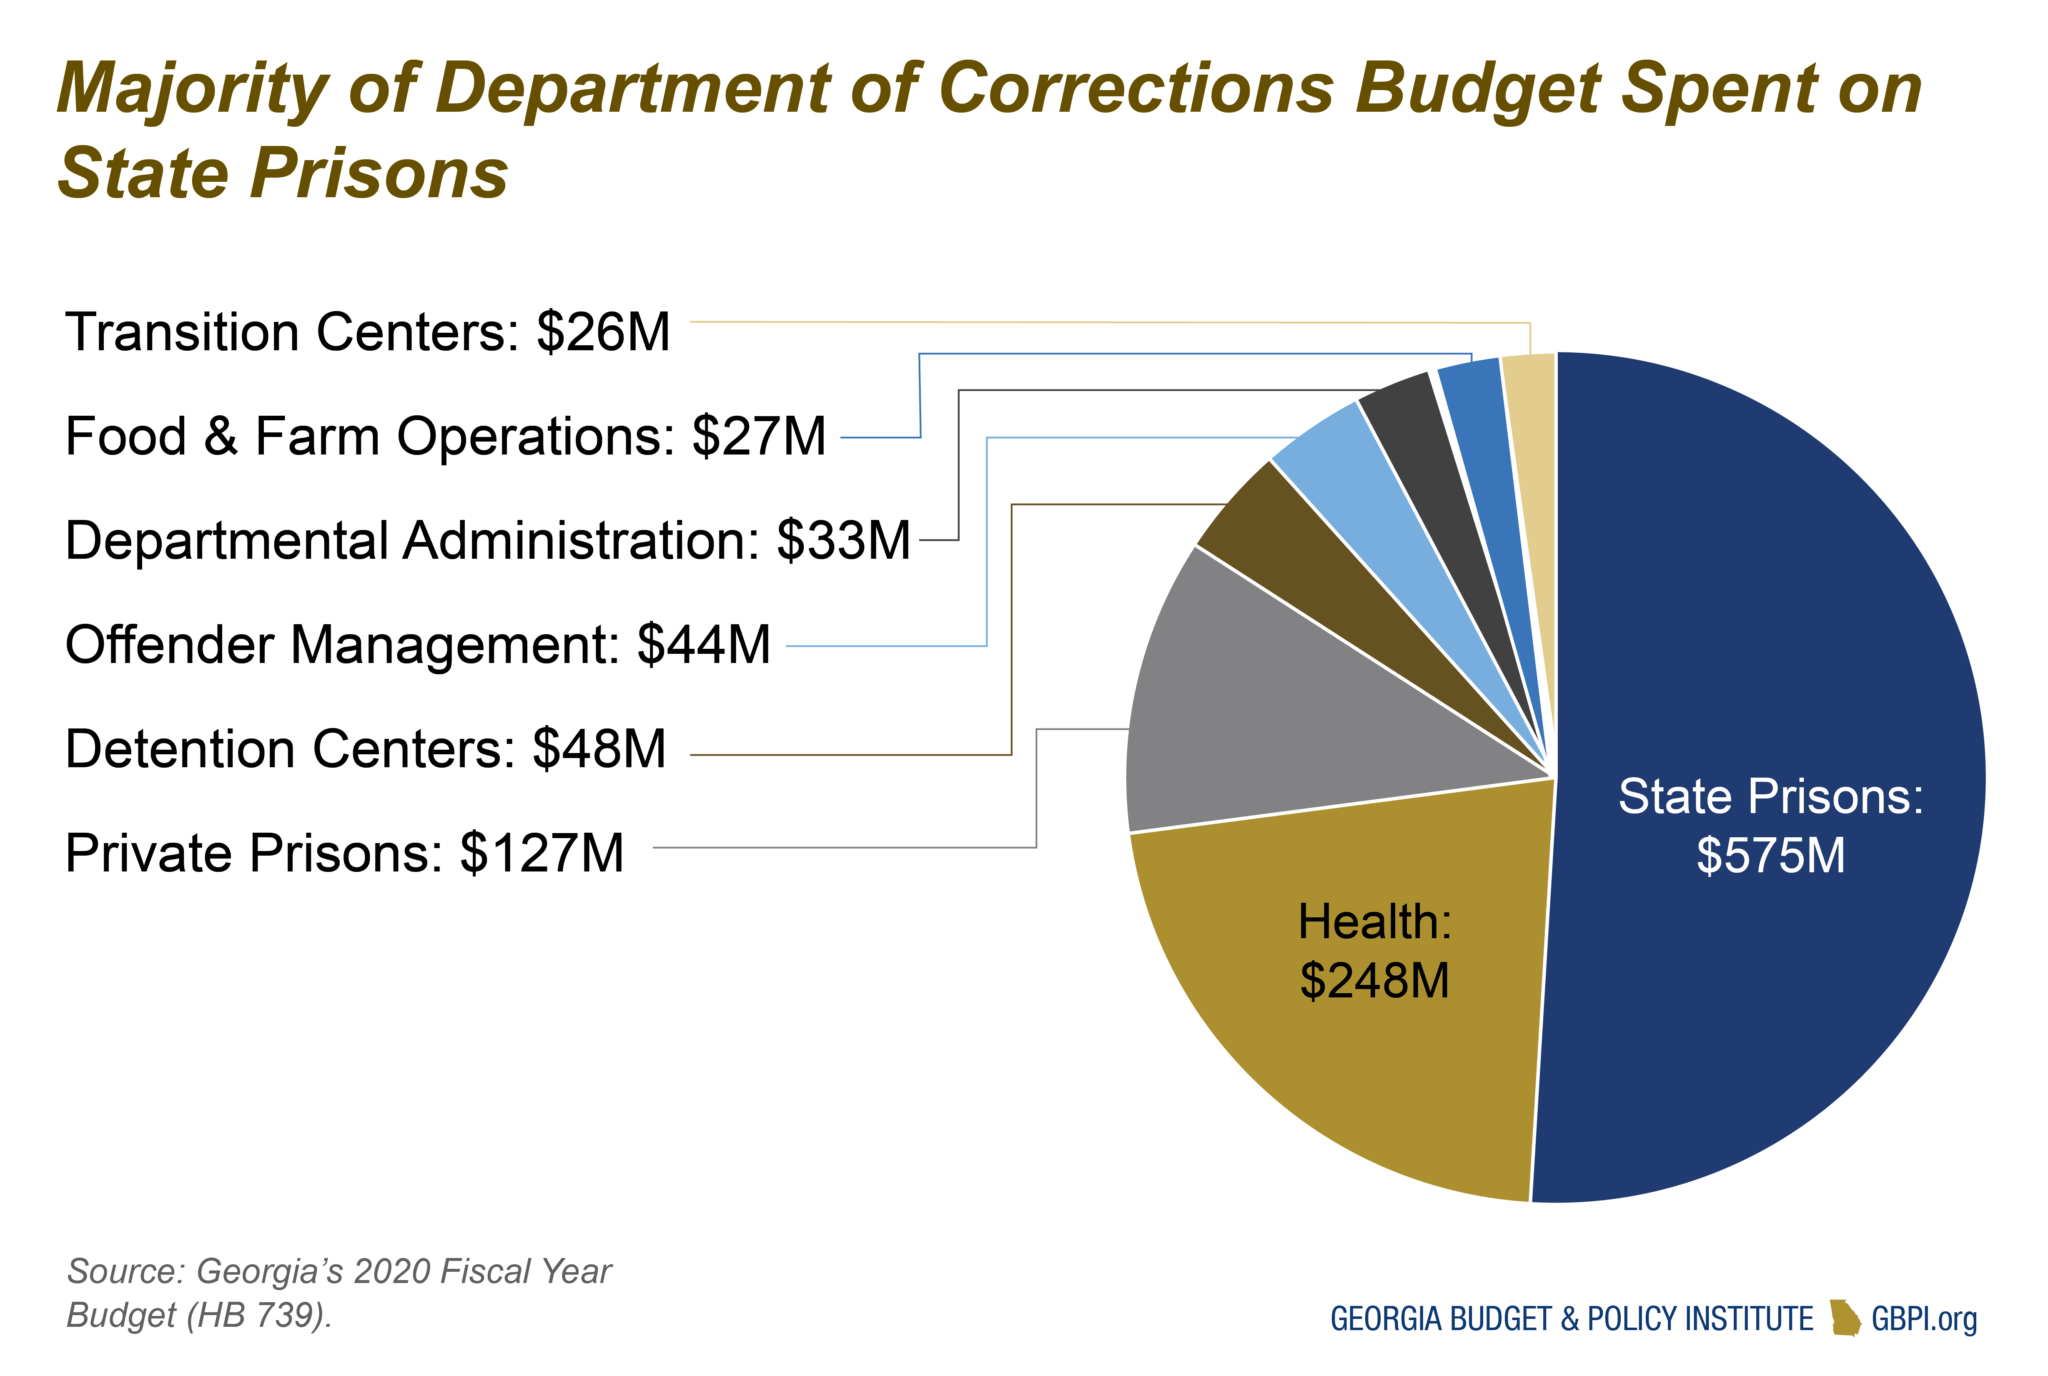 Georgia Criminal Legal System Budget Primer for State Fiscal Year 2021